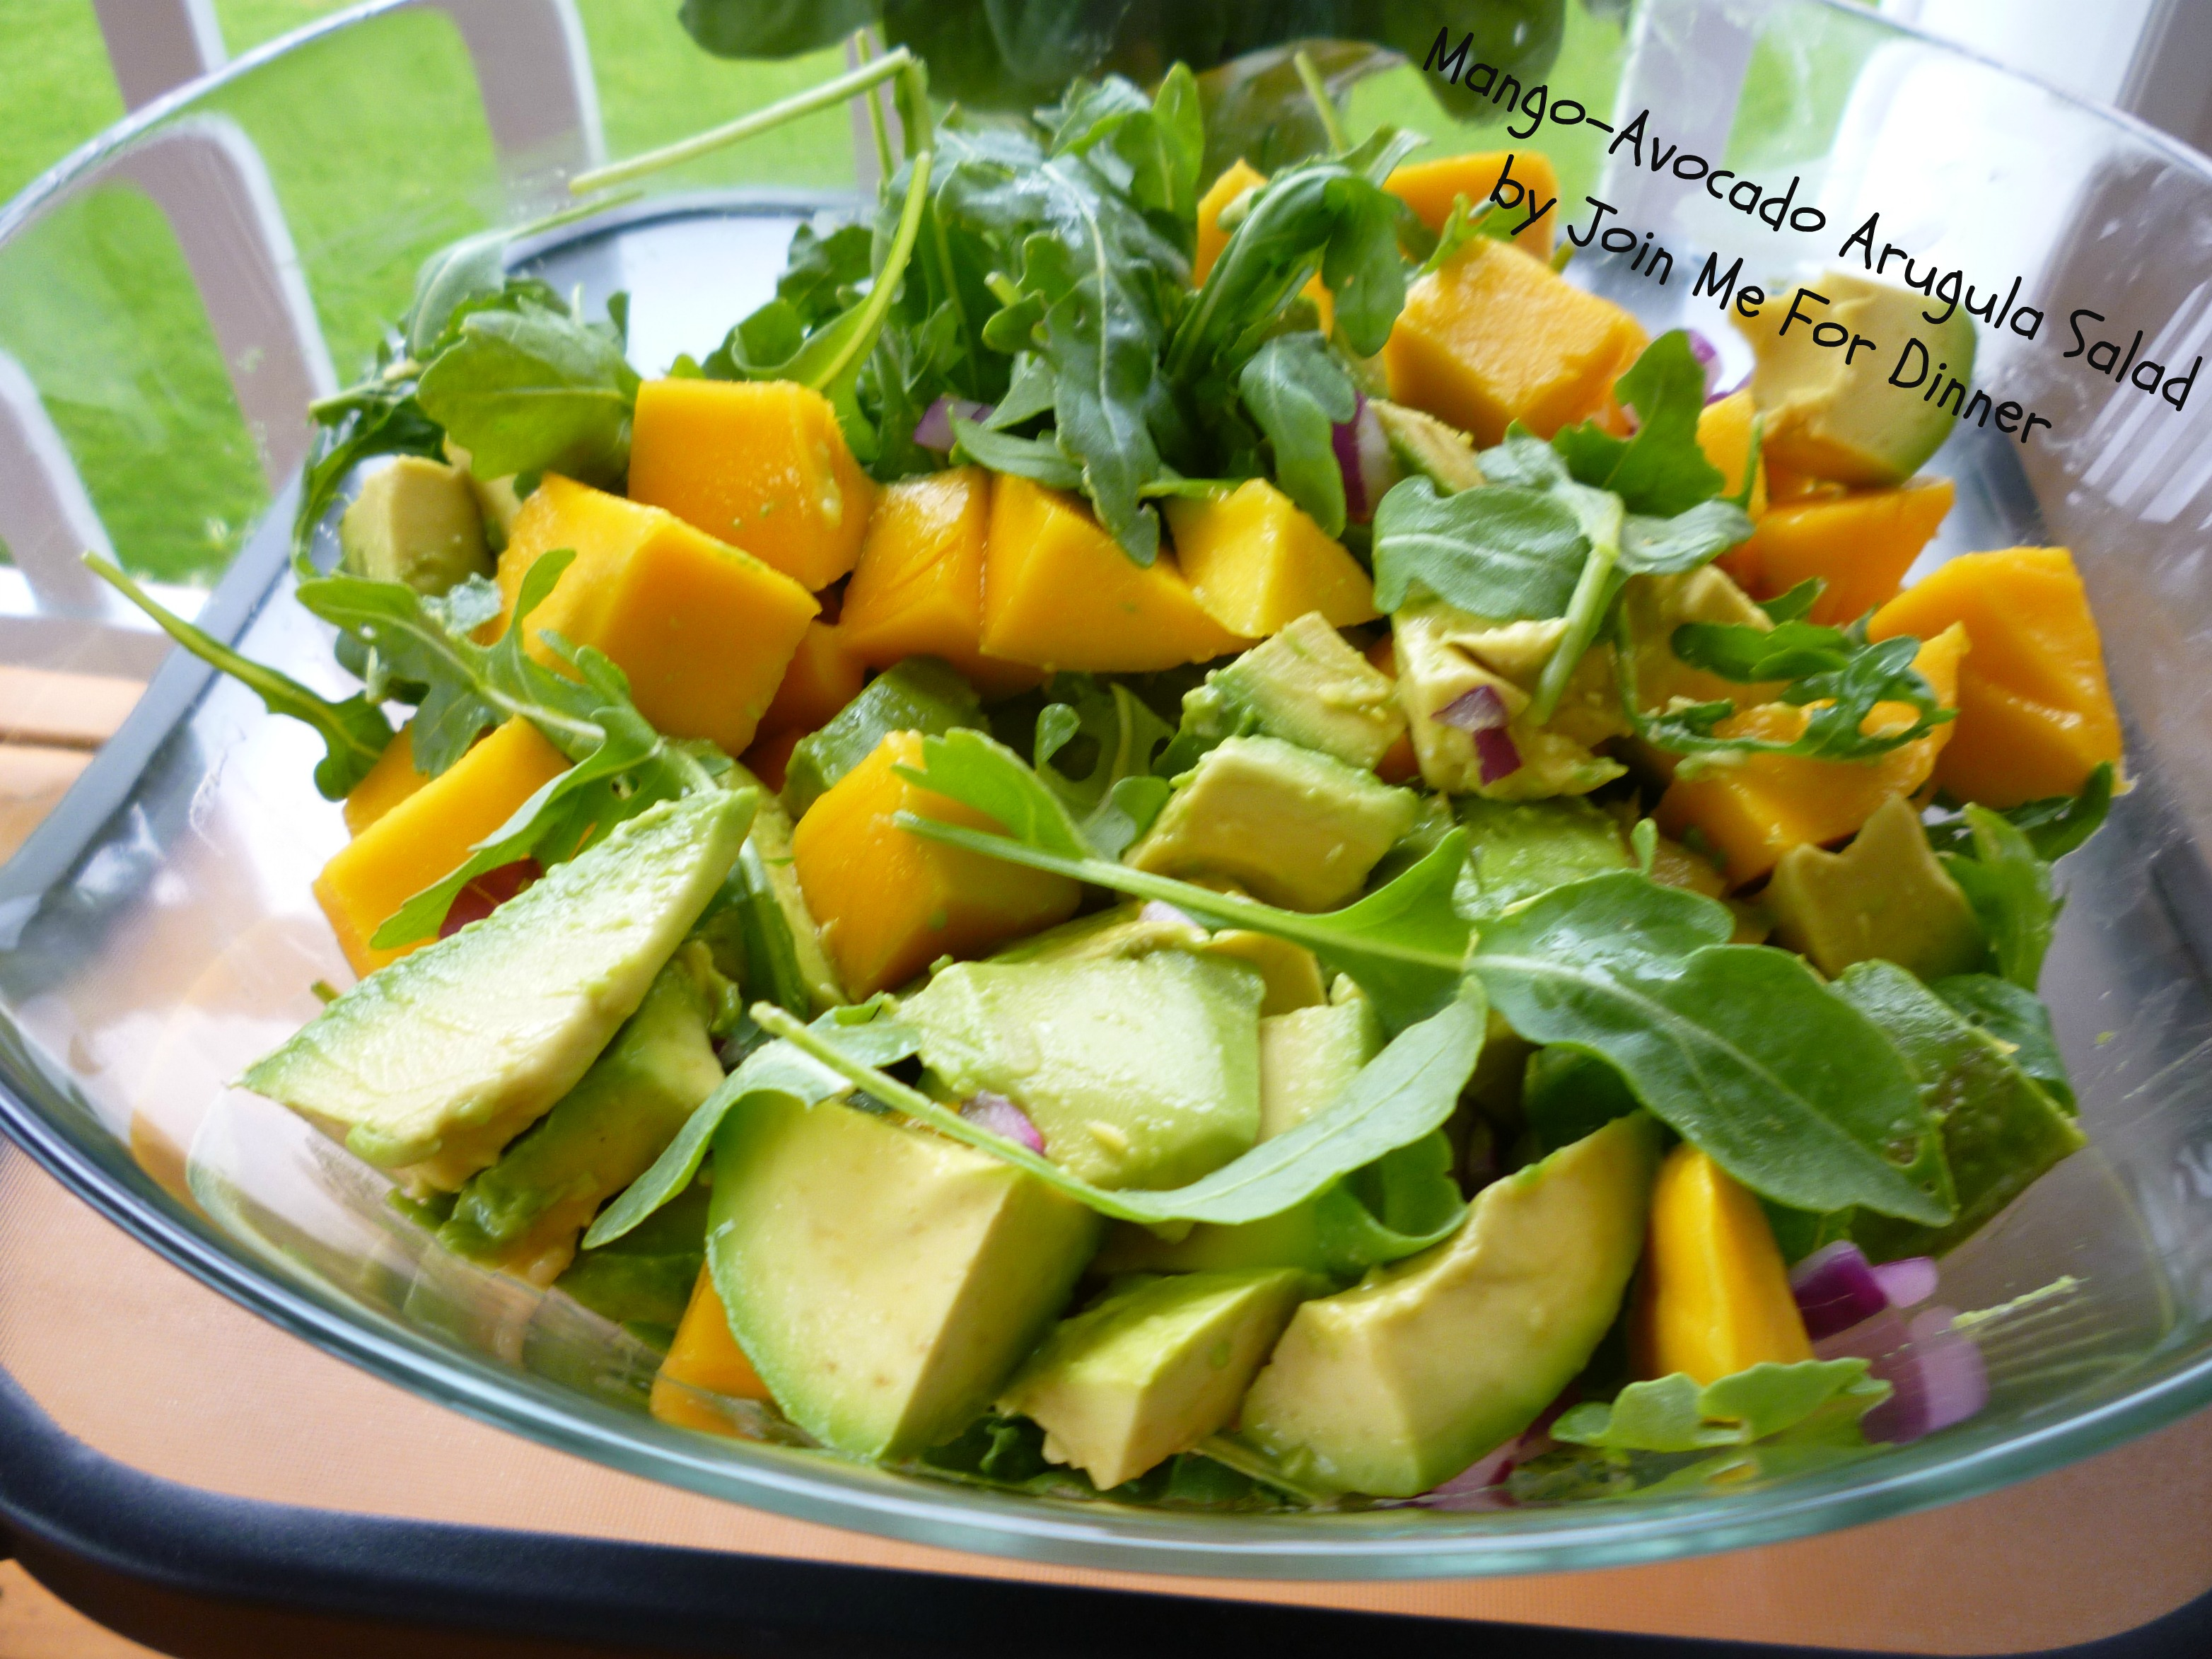 mango salad with avocado and mango salad with avocado and mango salad ...